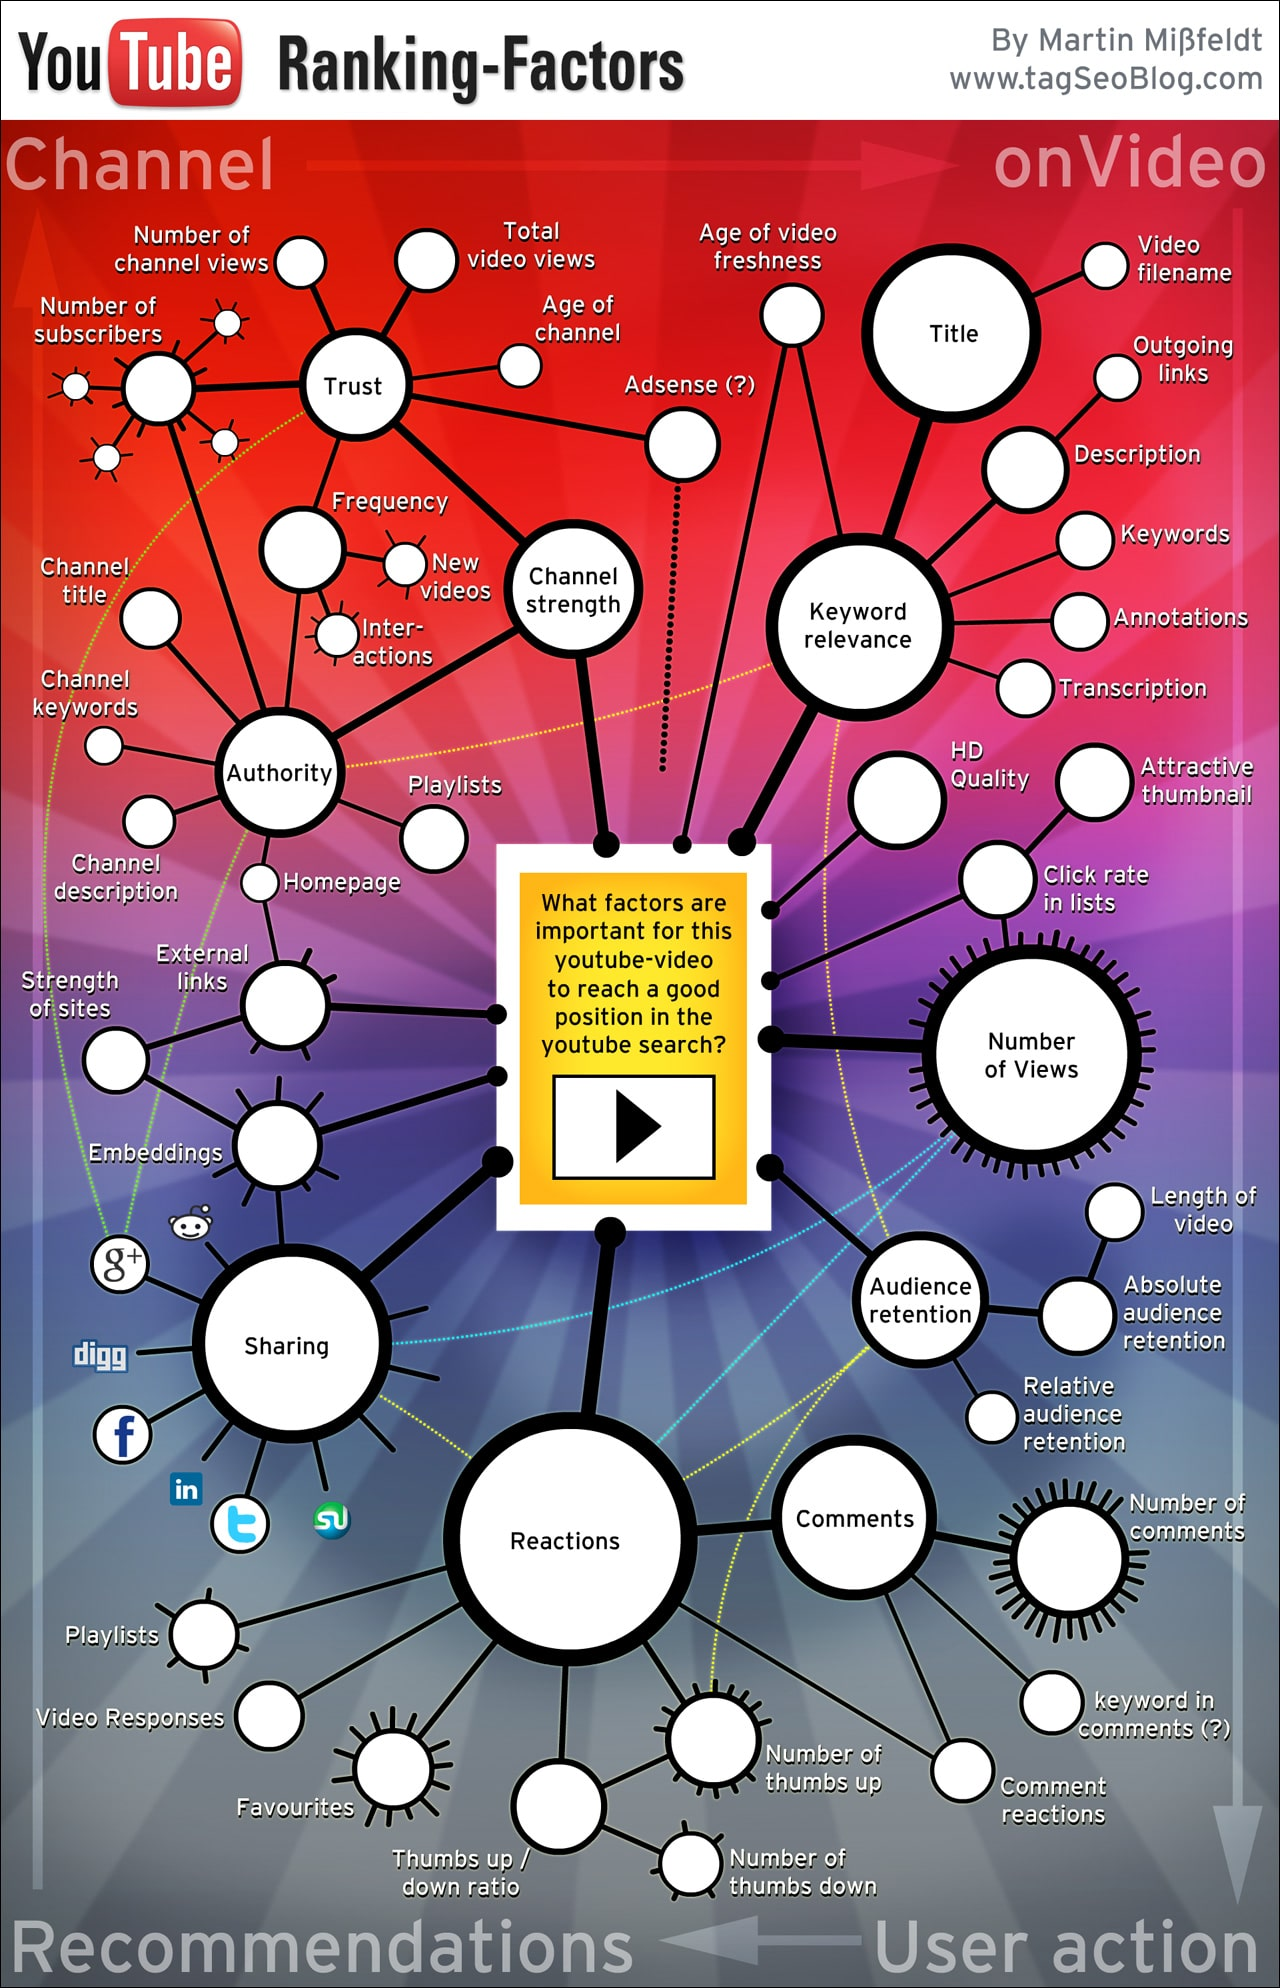 youtube-ranking-factors-chart-infographic